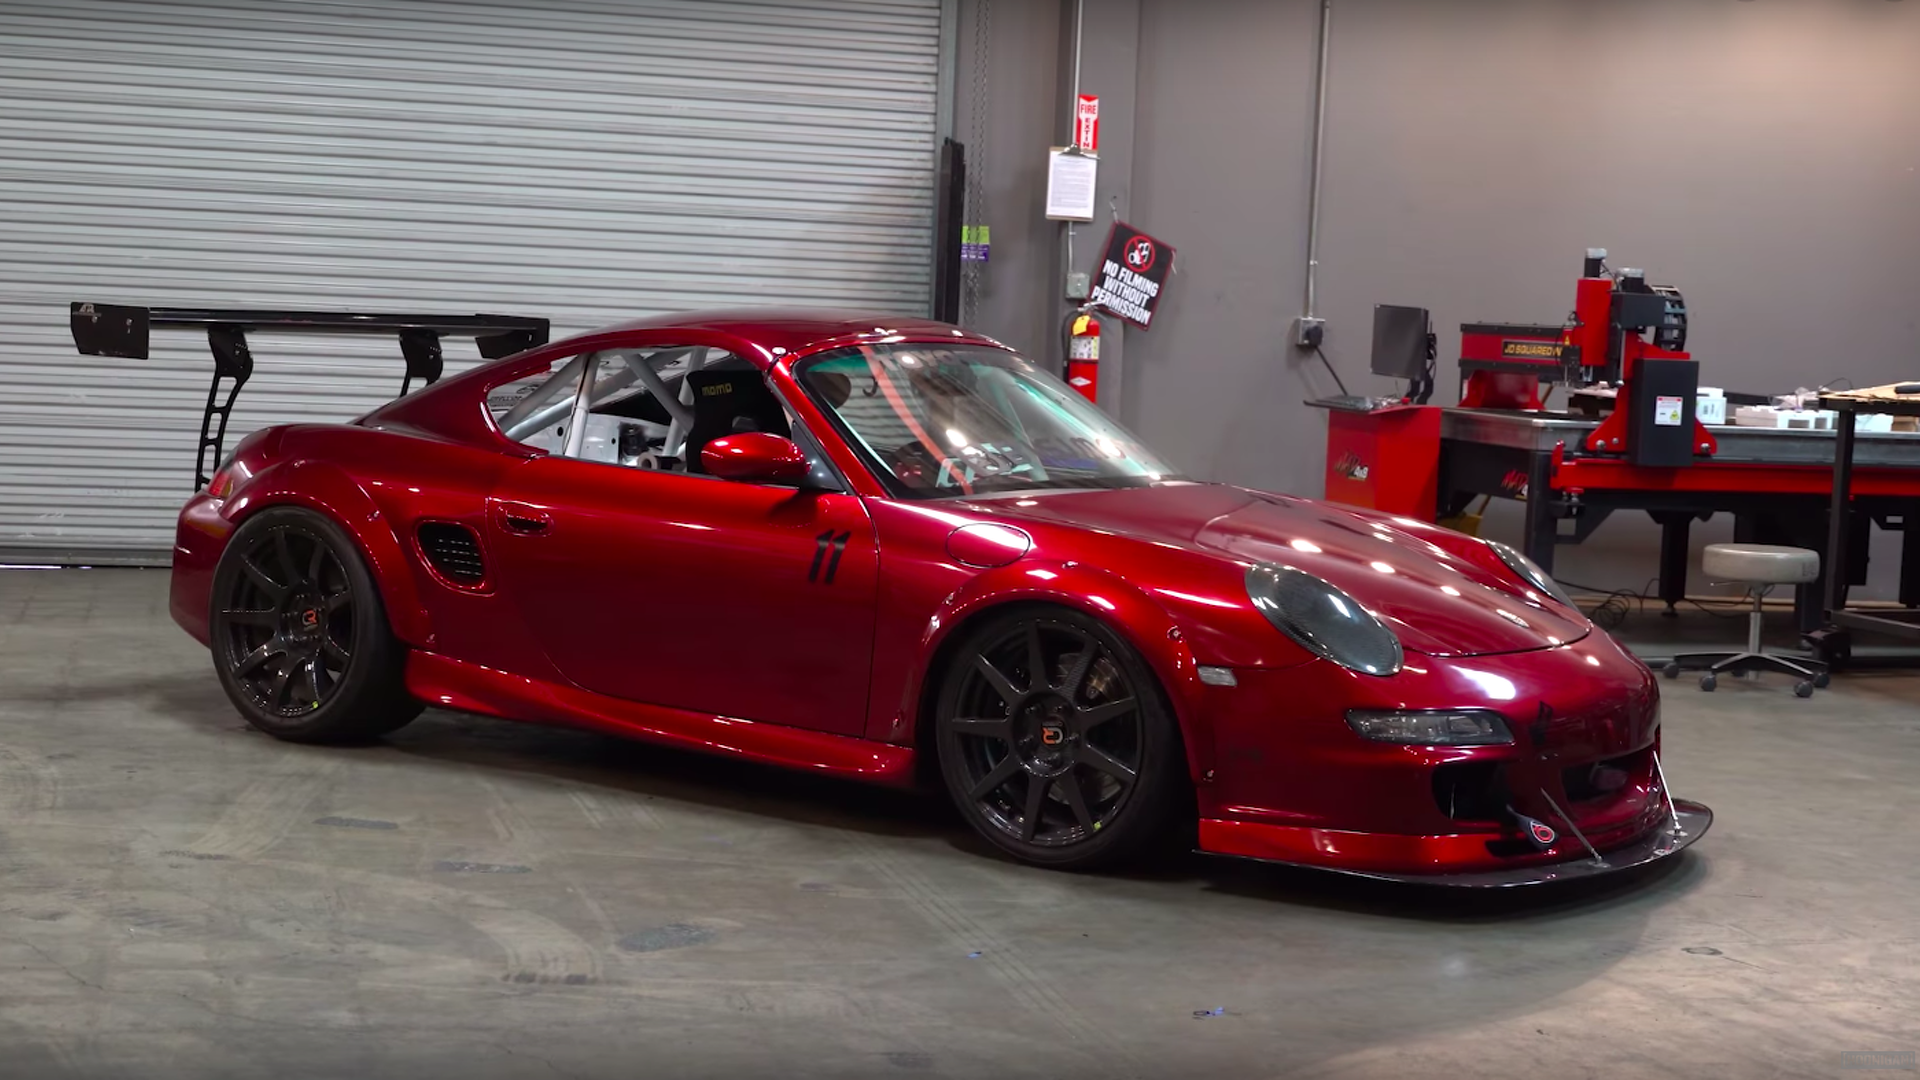 This Biturbo Porsche Boxster With Central Driver S Seat Is Bonkers